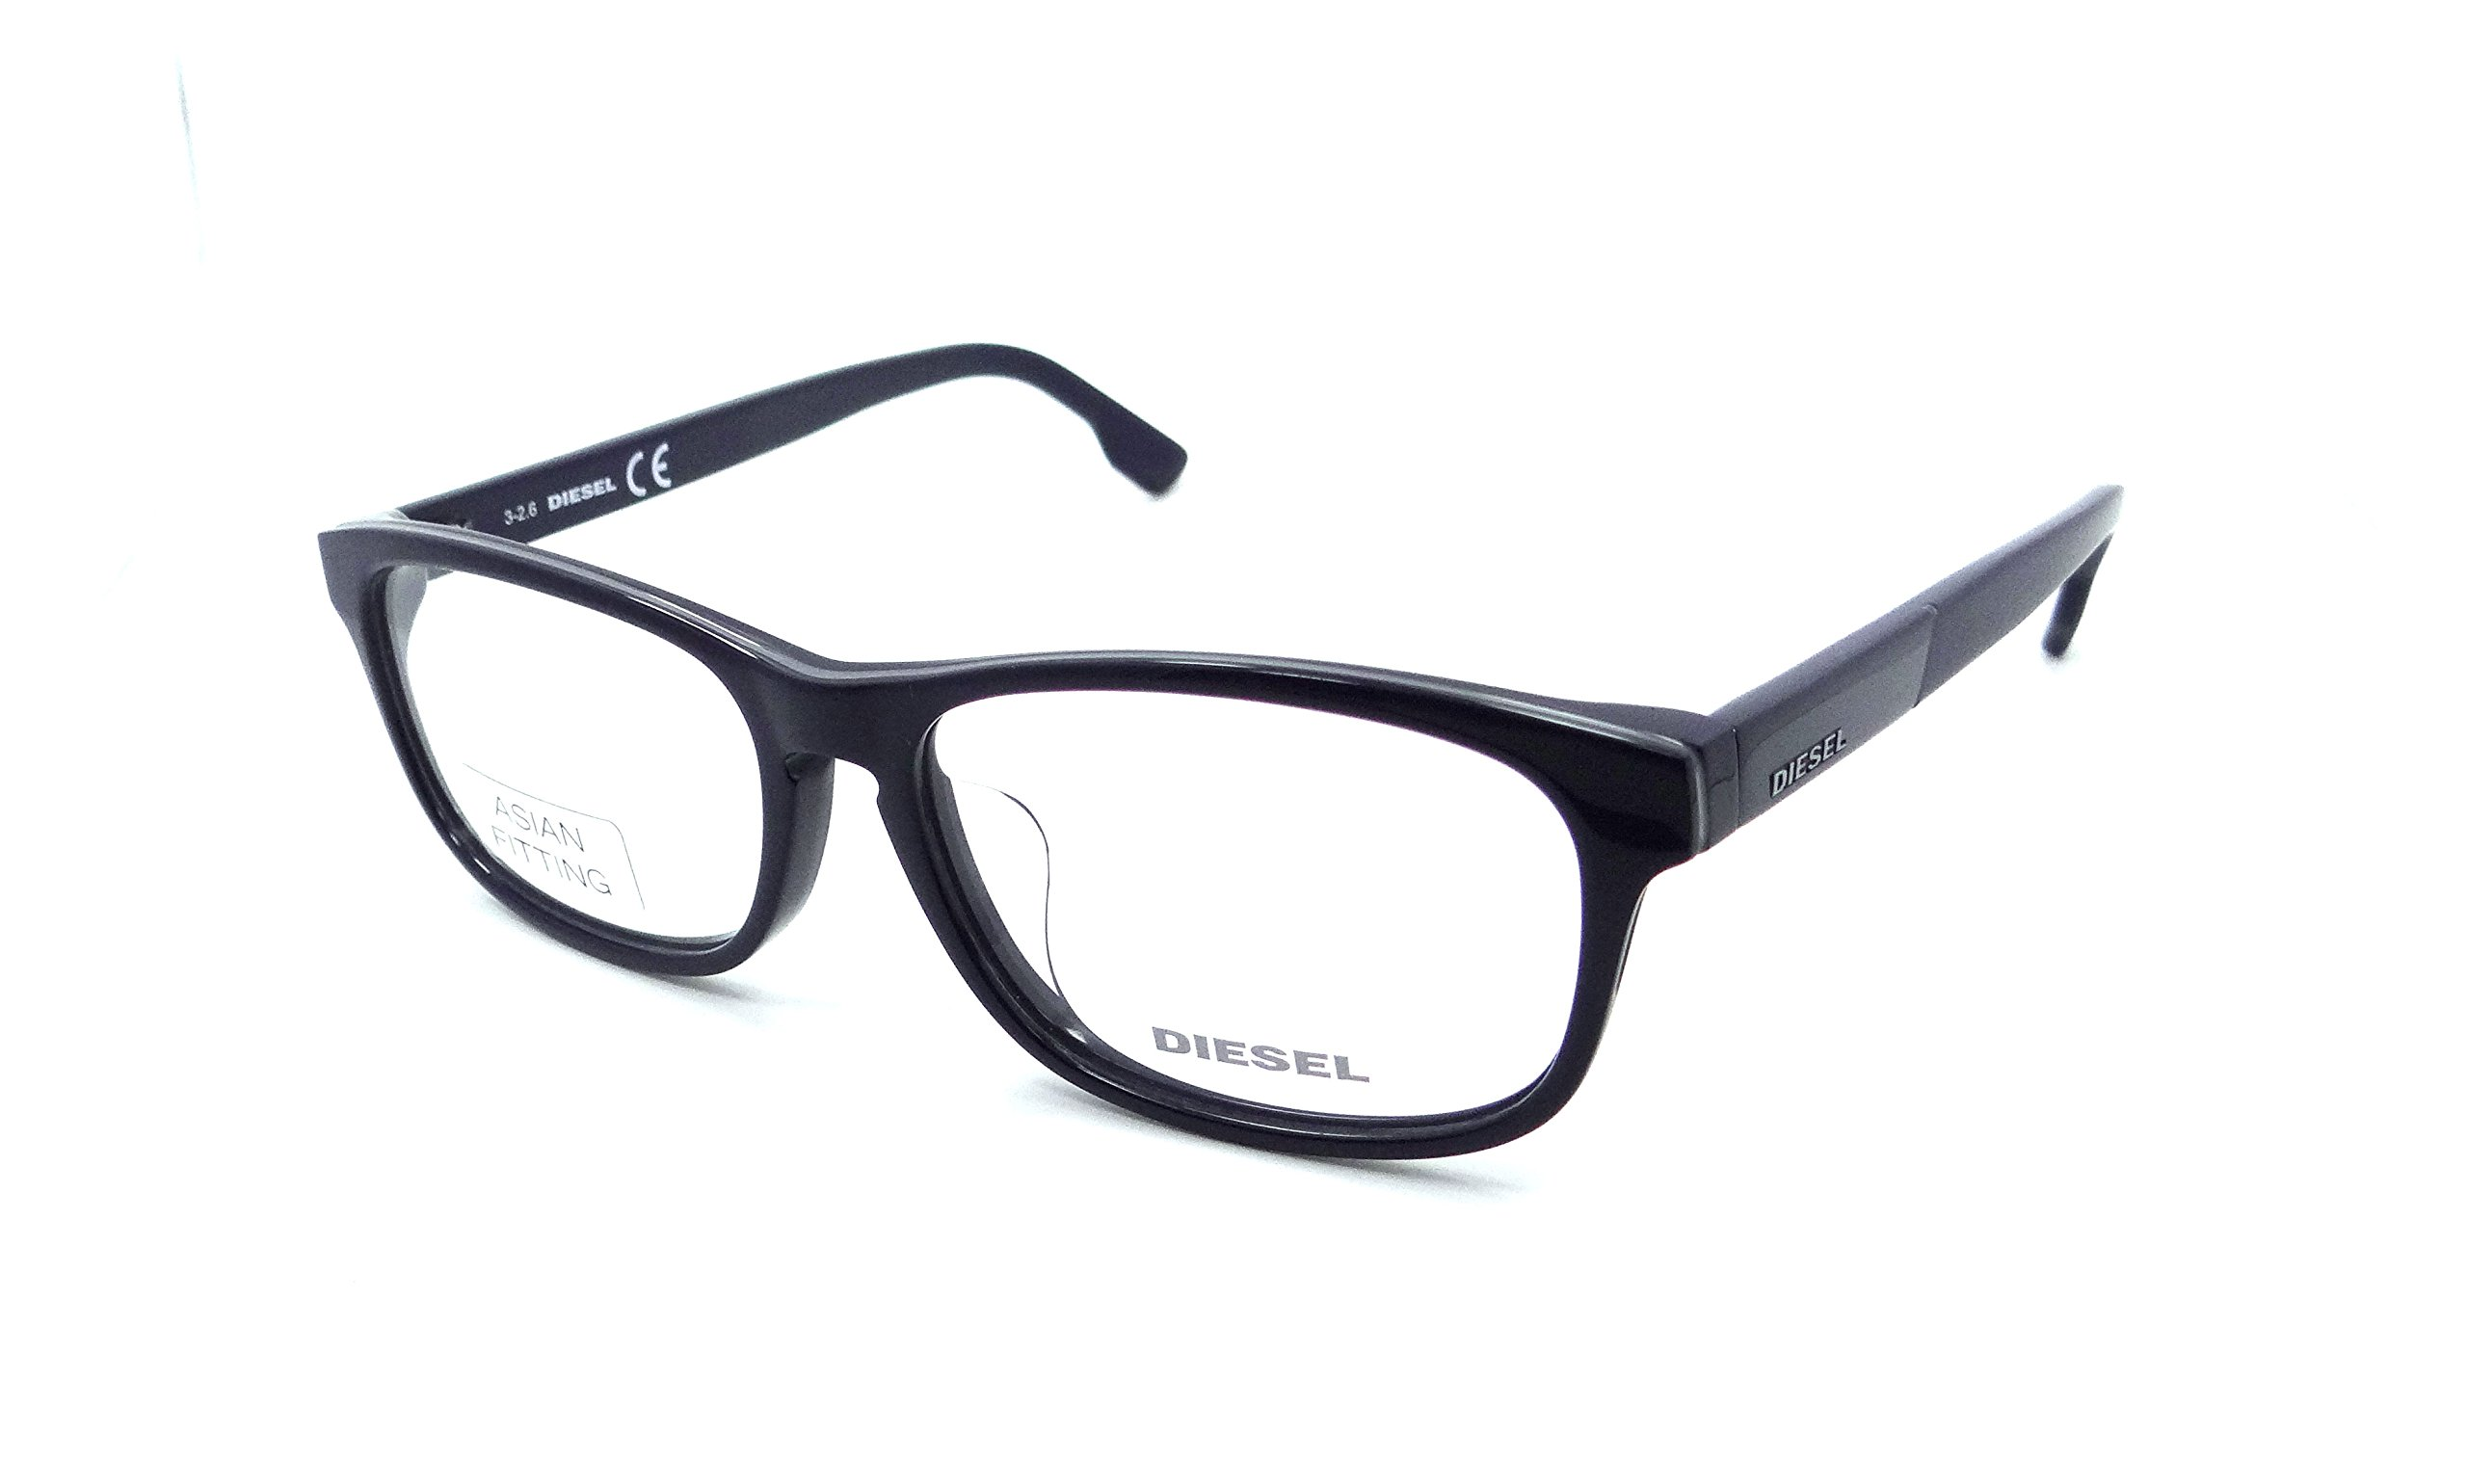 Diesel Rx Eyeglasses Frames DL5197-F 090 56-15-145 Blue Grey Blue Asian Fit